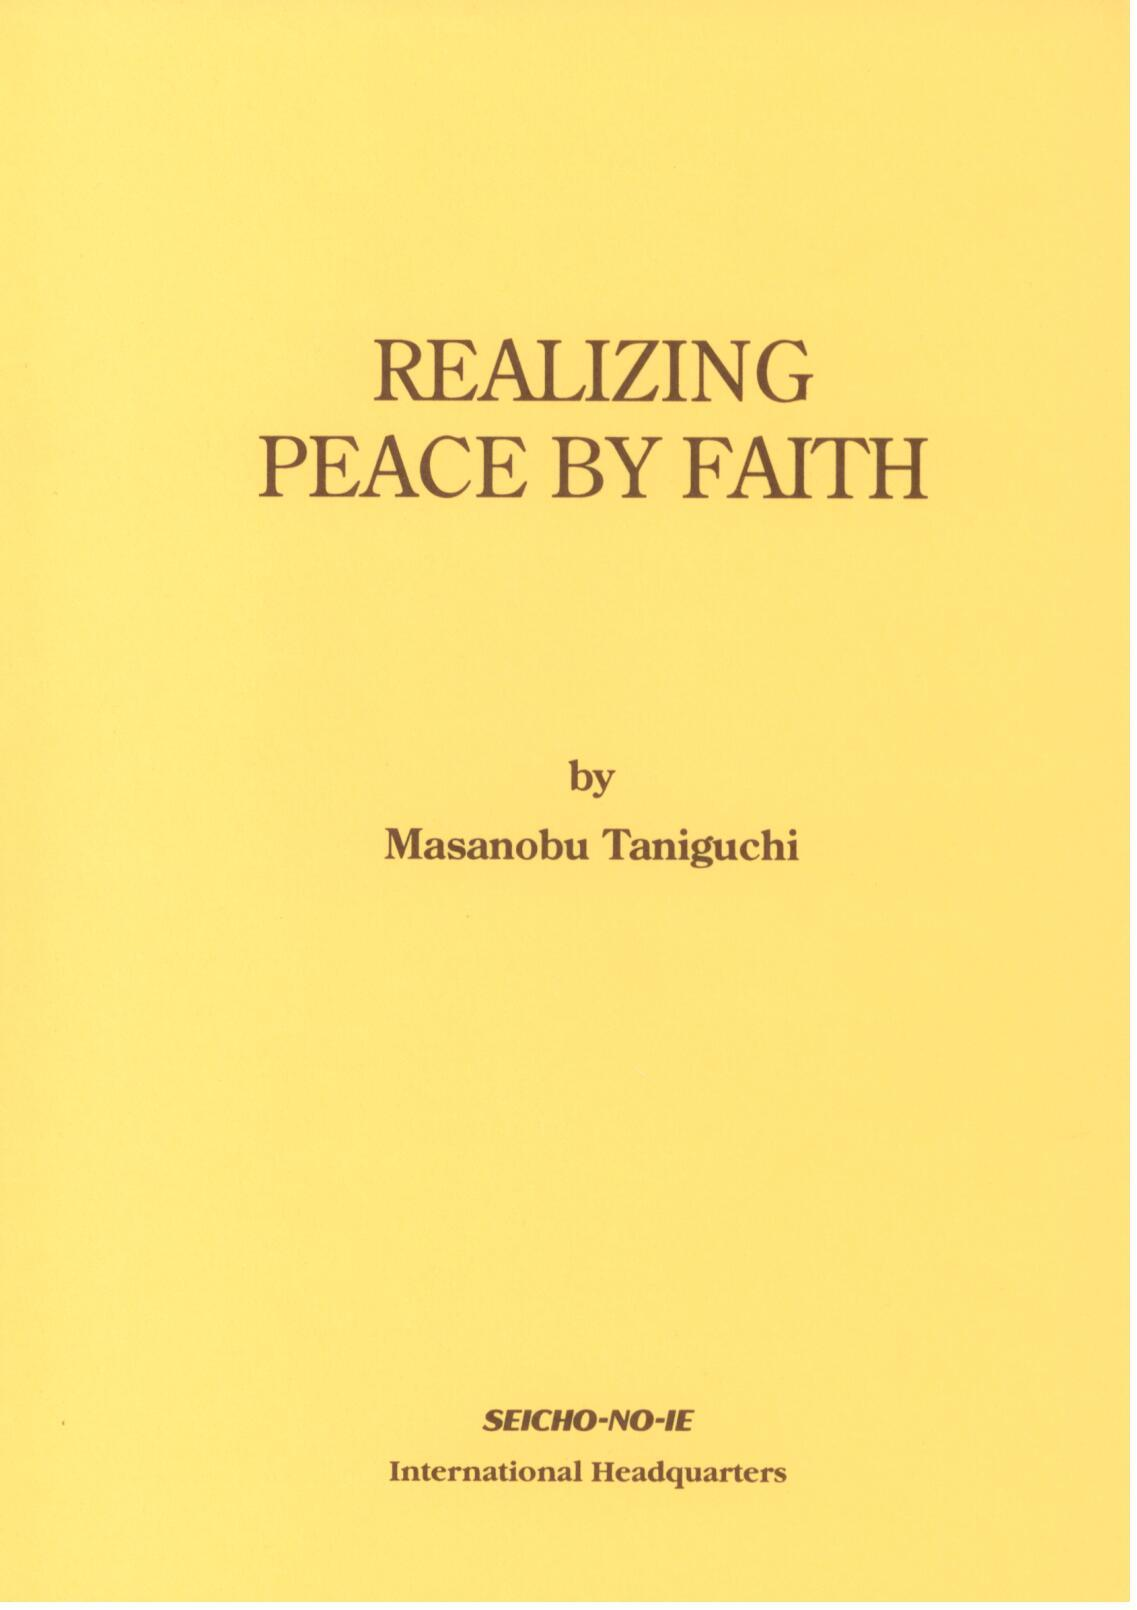 Realizing Peace by Faith